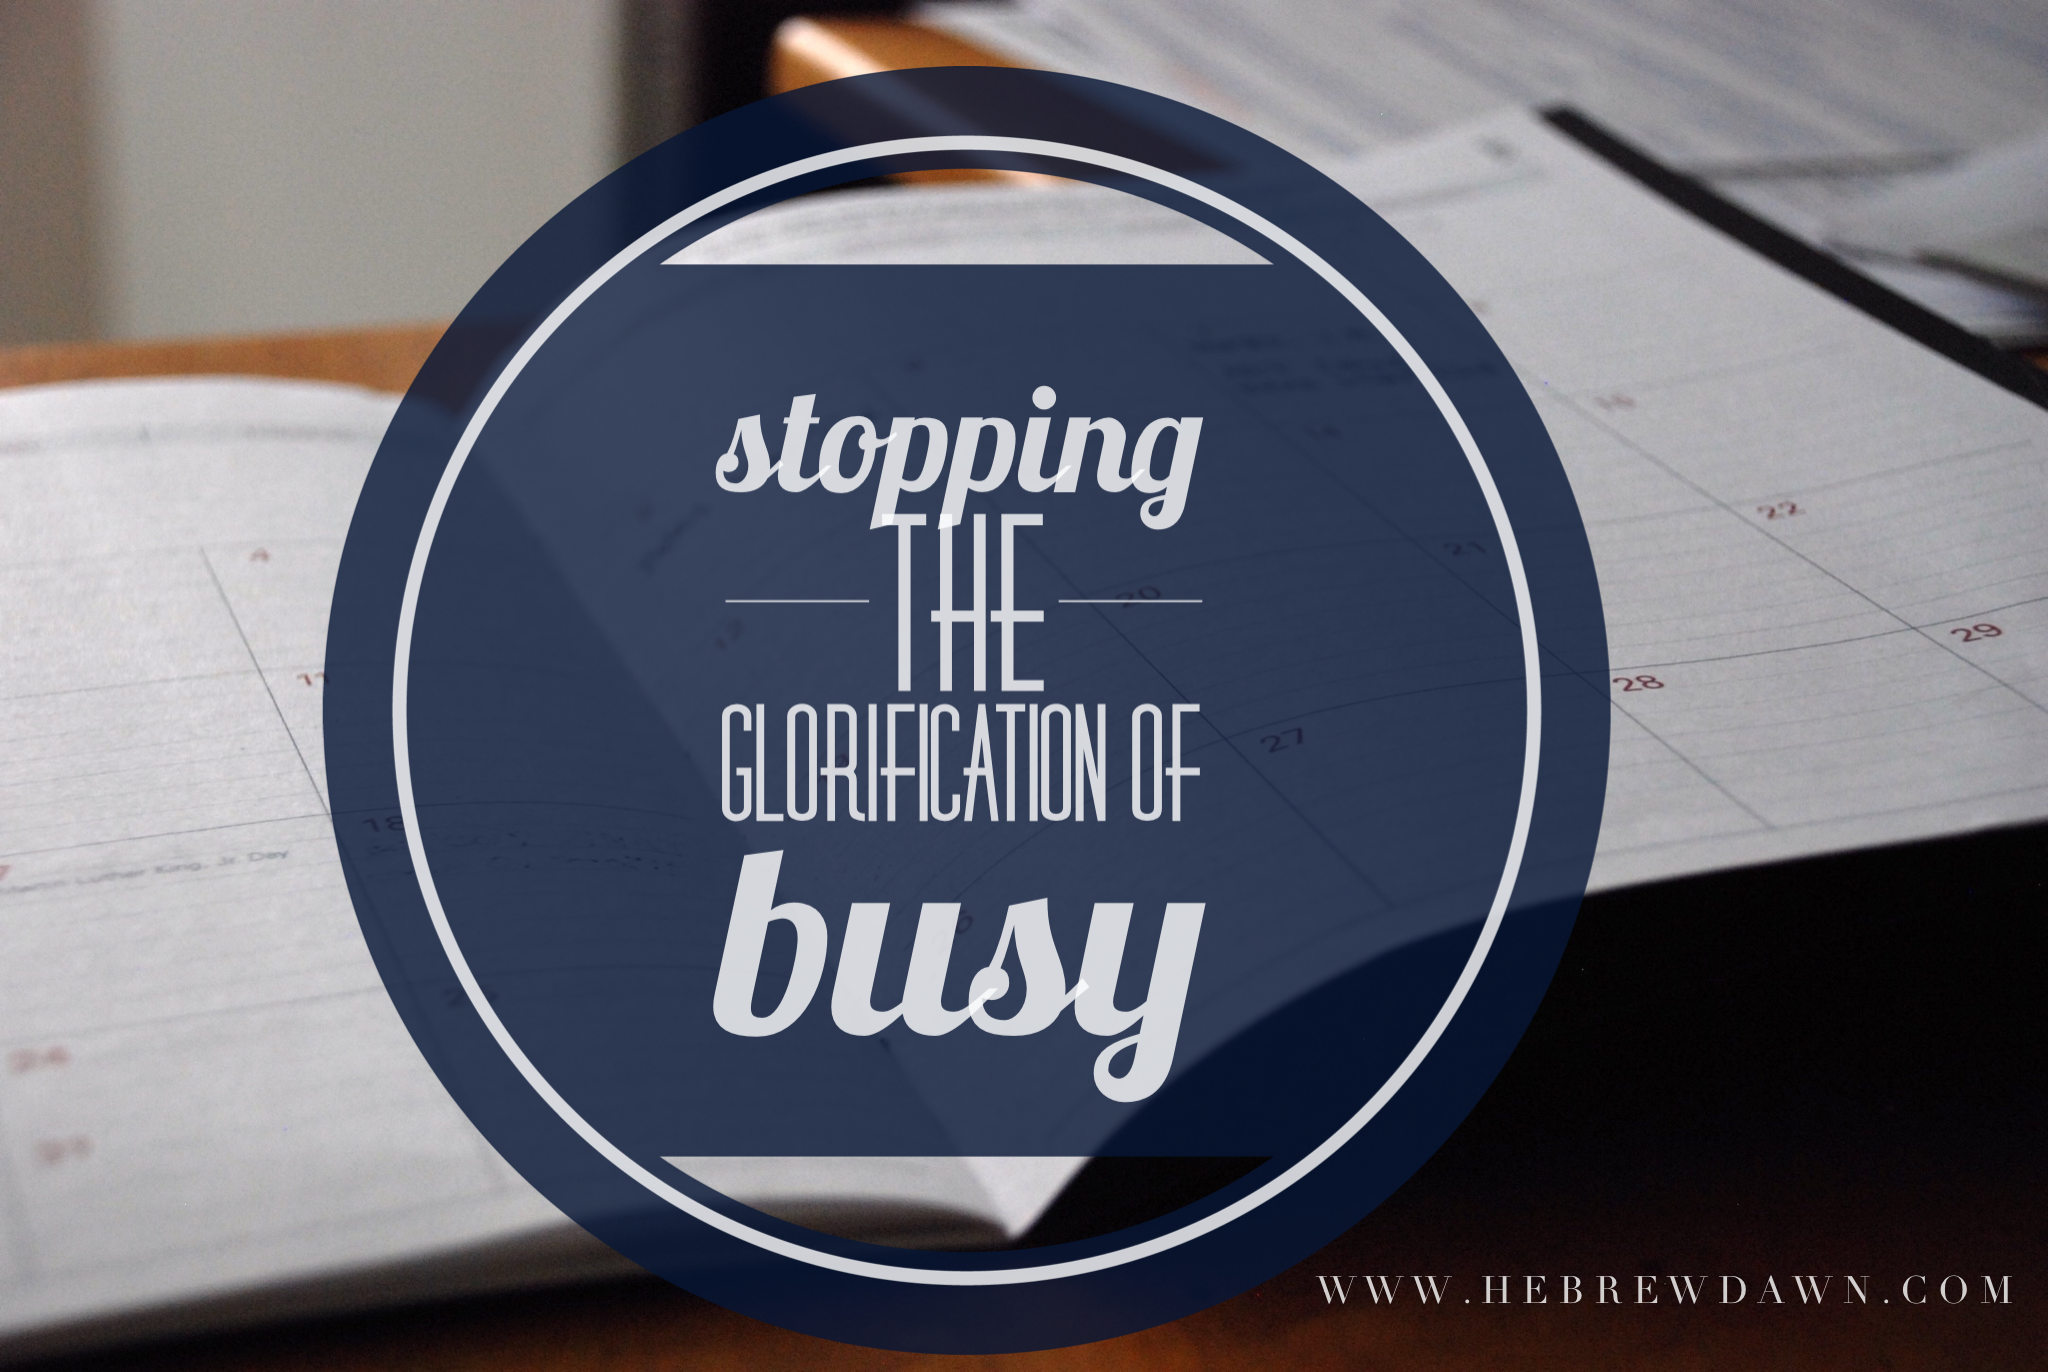 HebrewDawn: I've Been So Busy - Stopping the Glorification of Busy